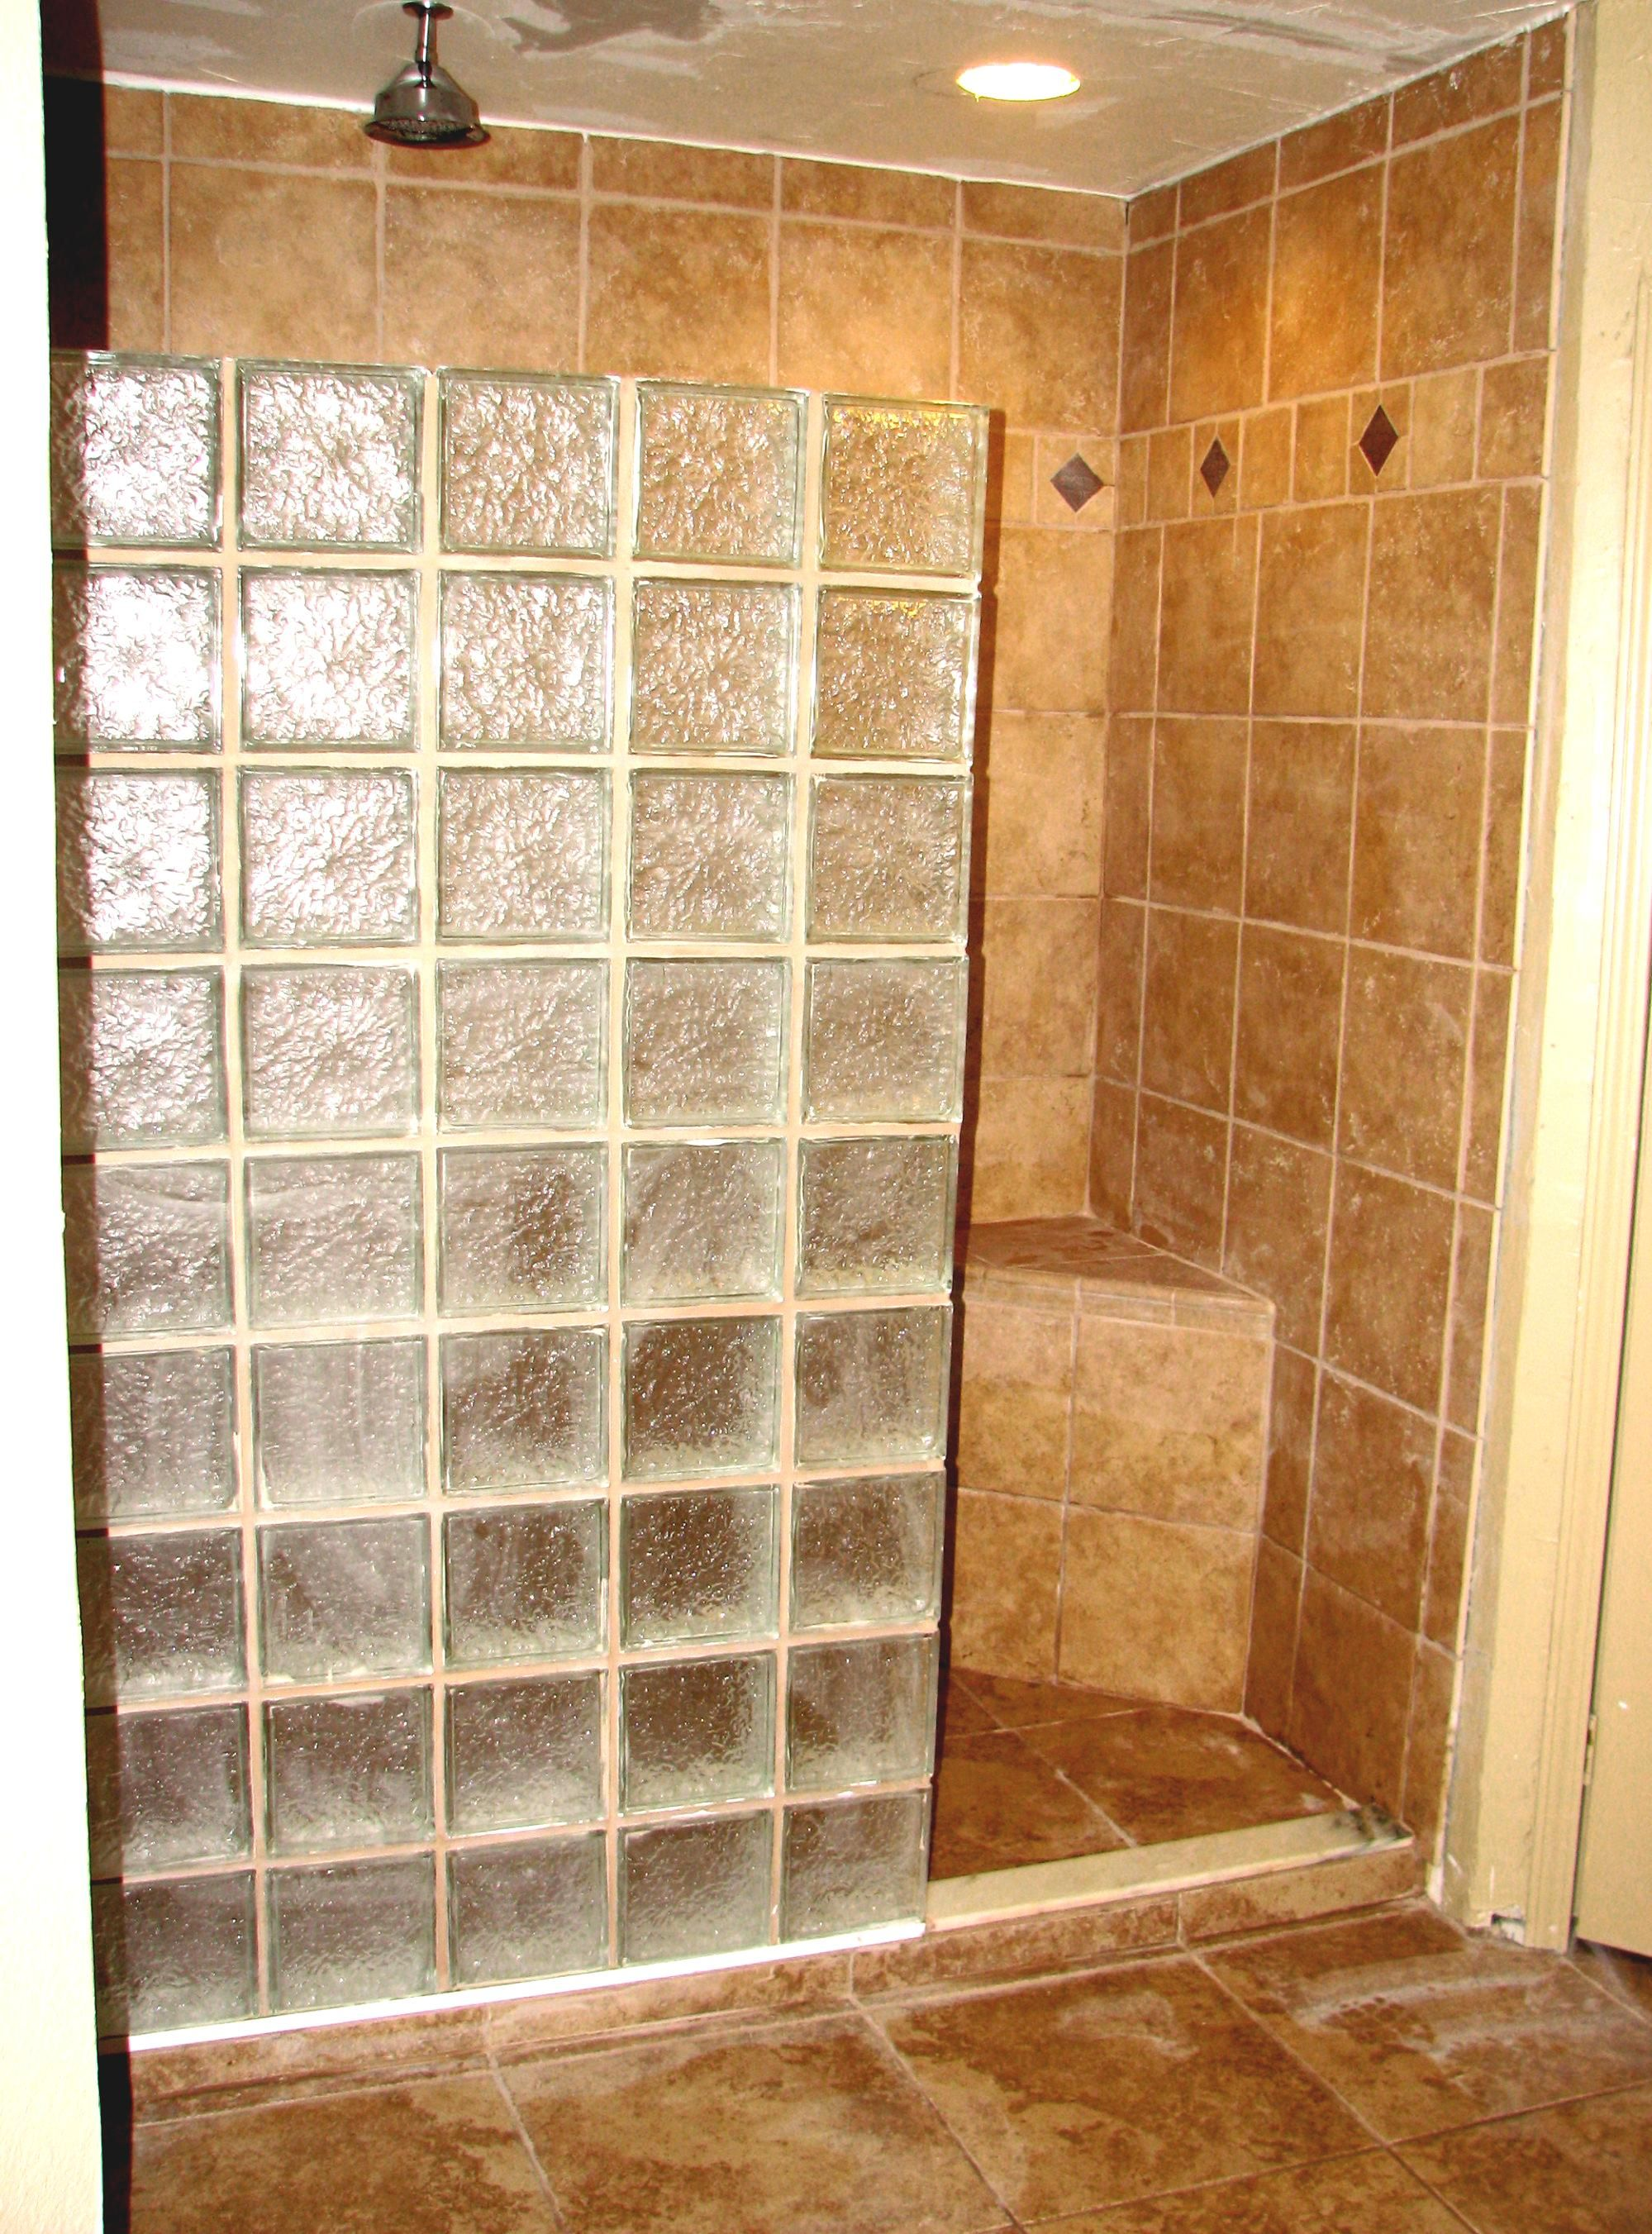 Decoori Wpcontent Uploads 2016 04 Walkinshowerideason Custom Small Bathroom Walk In Shower Designs Inspiration Design